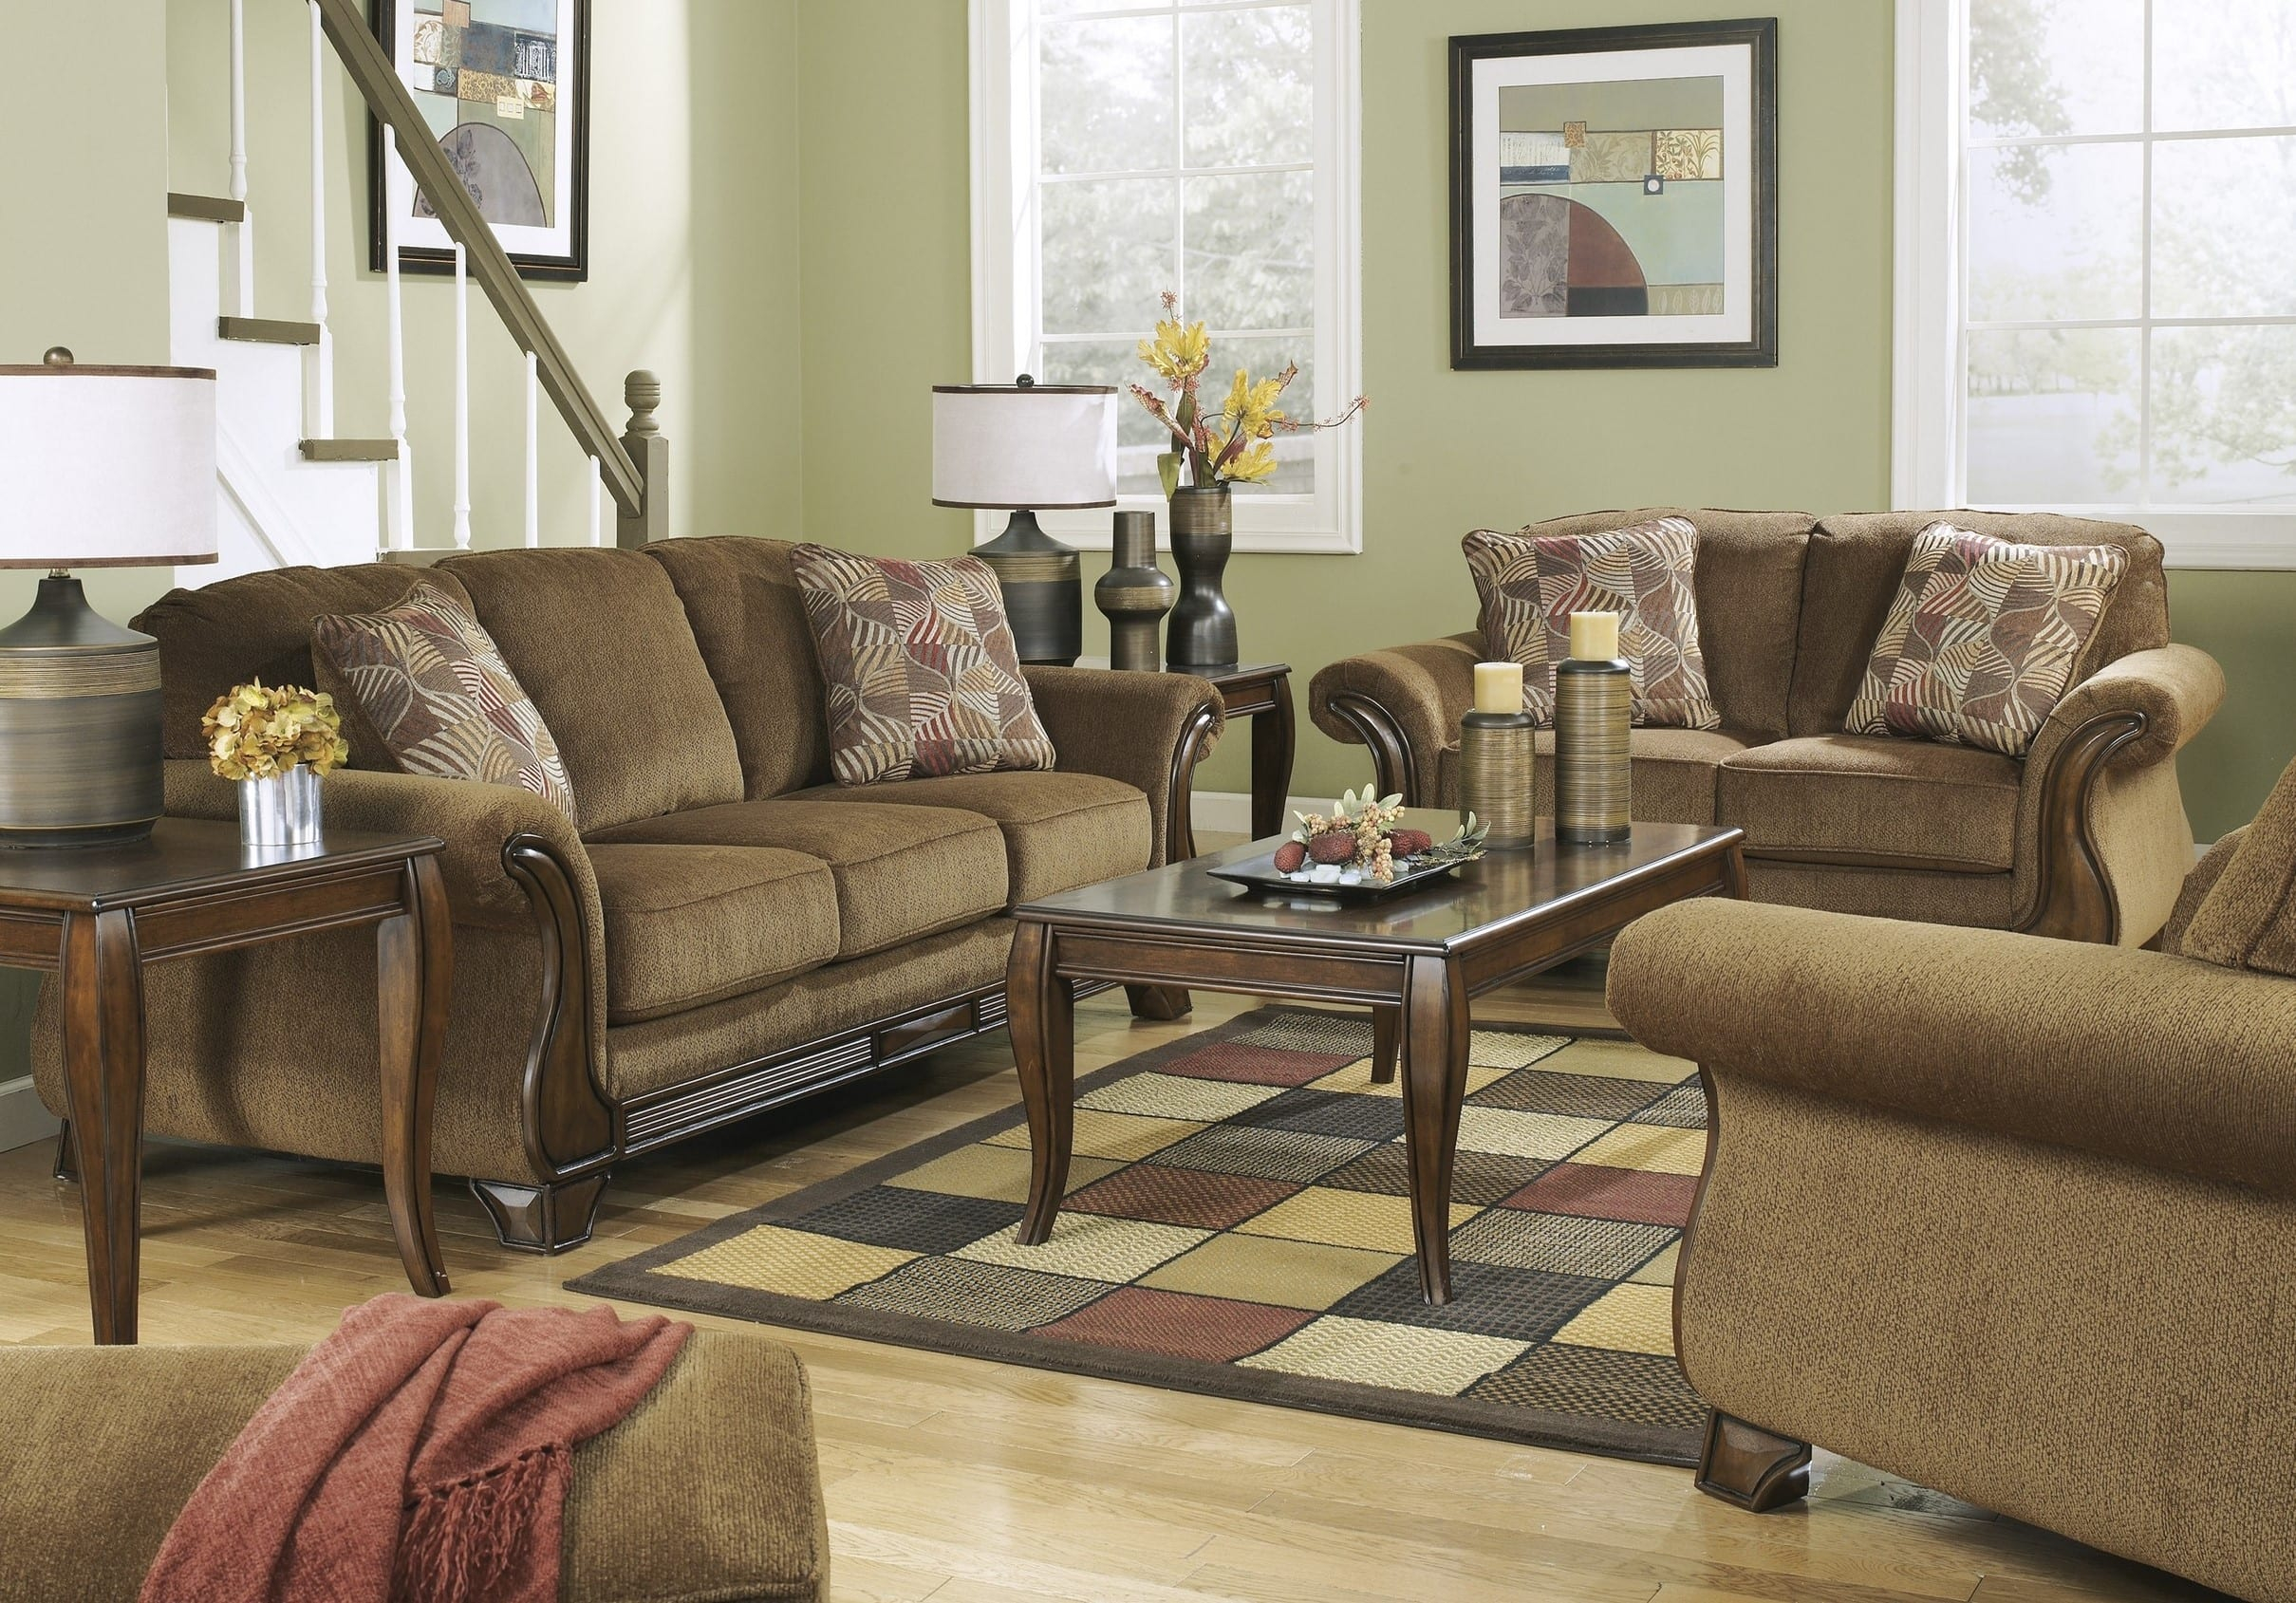 Signature Design Ashley 3830038 3830035 3830020 in 12 Awesome Concepts of How to Improve Living Room Set 3 Piece